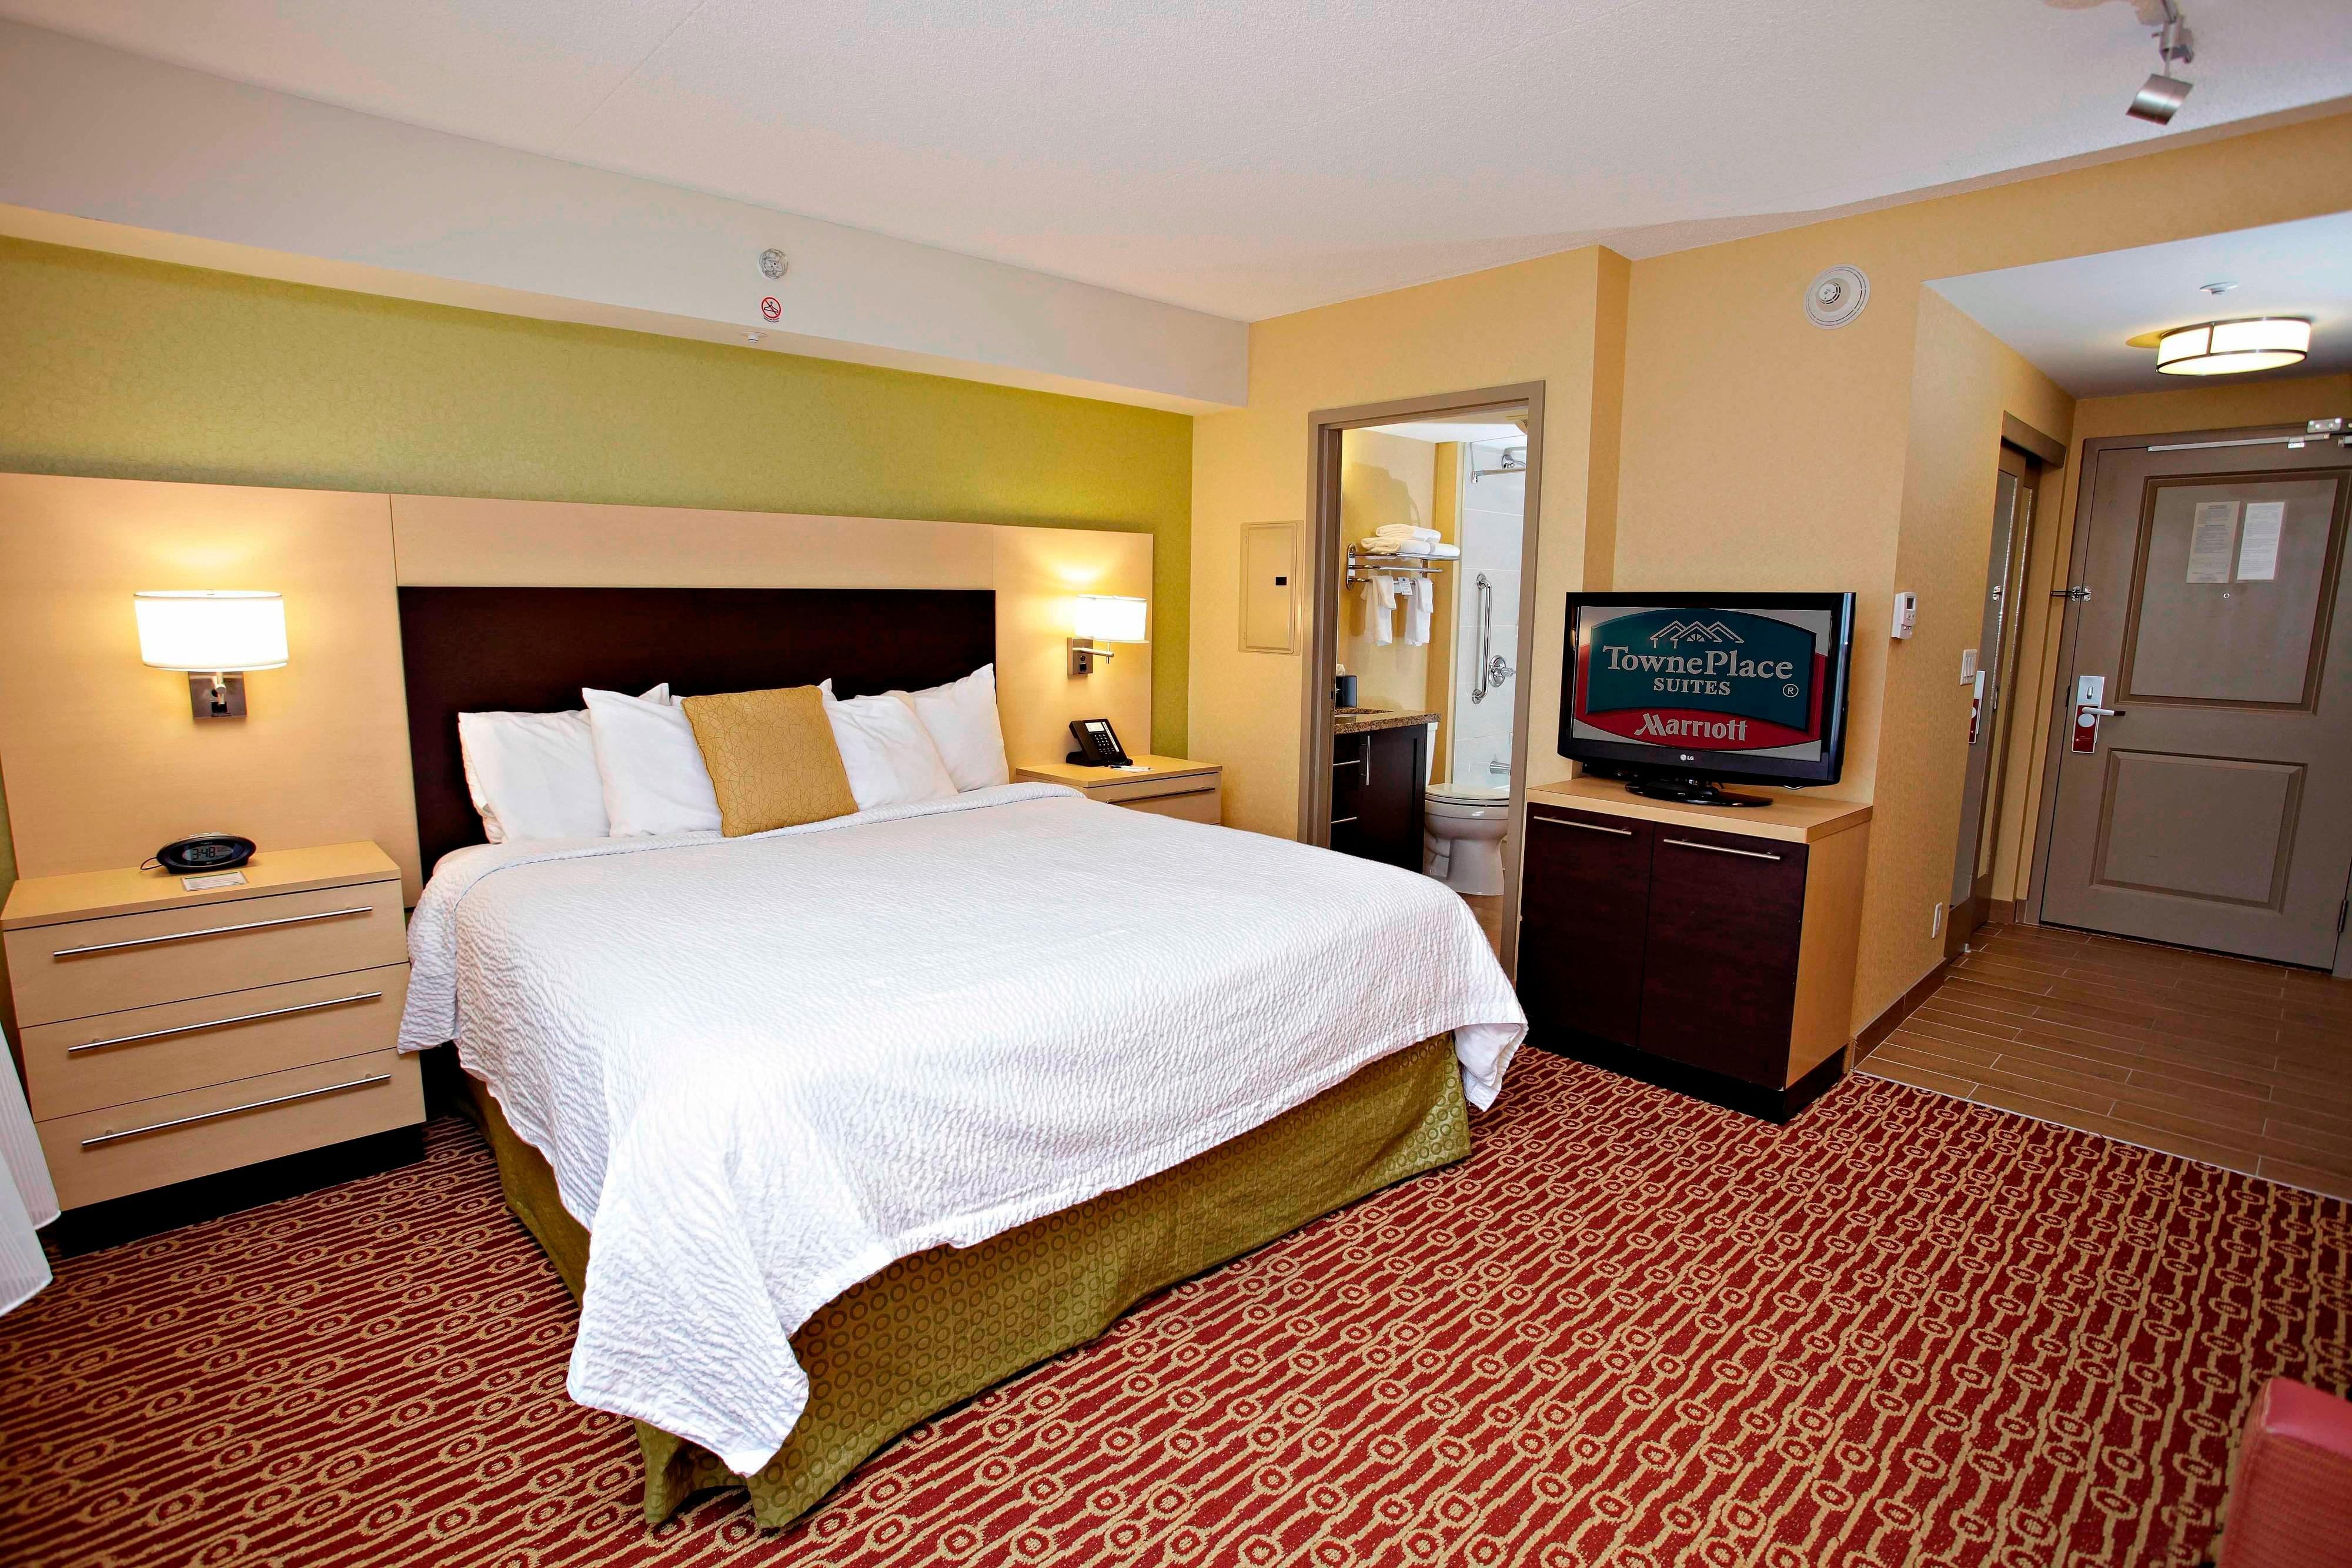 TownePlace Suites King